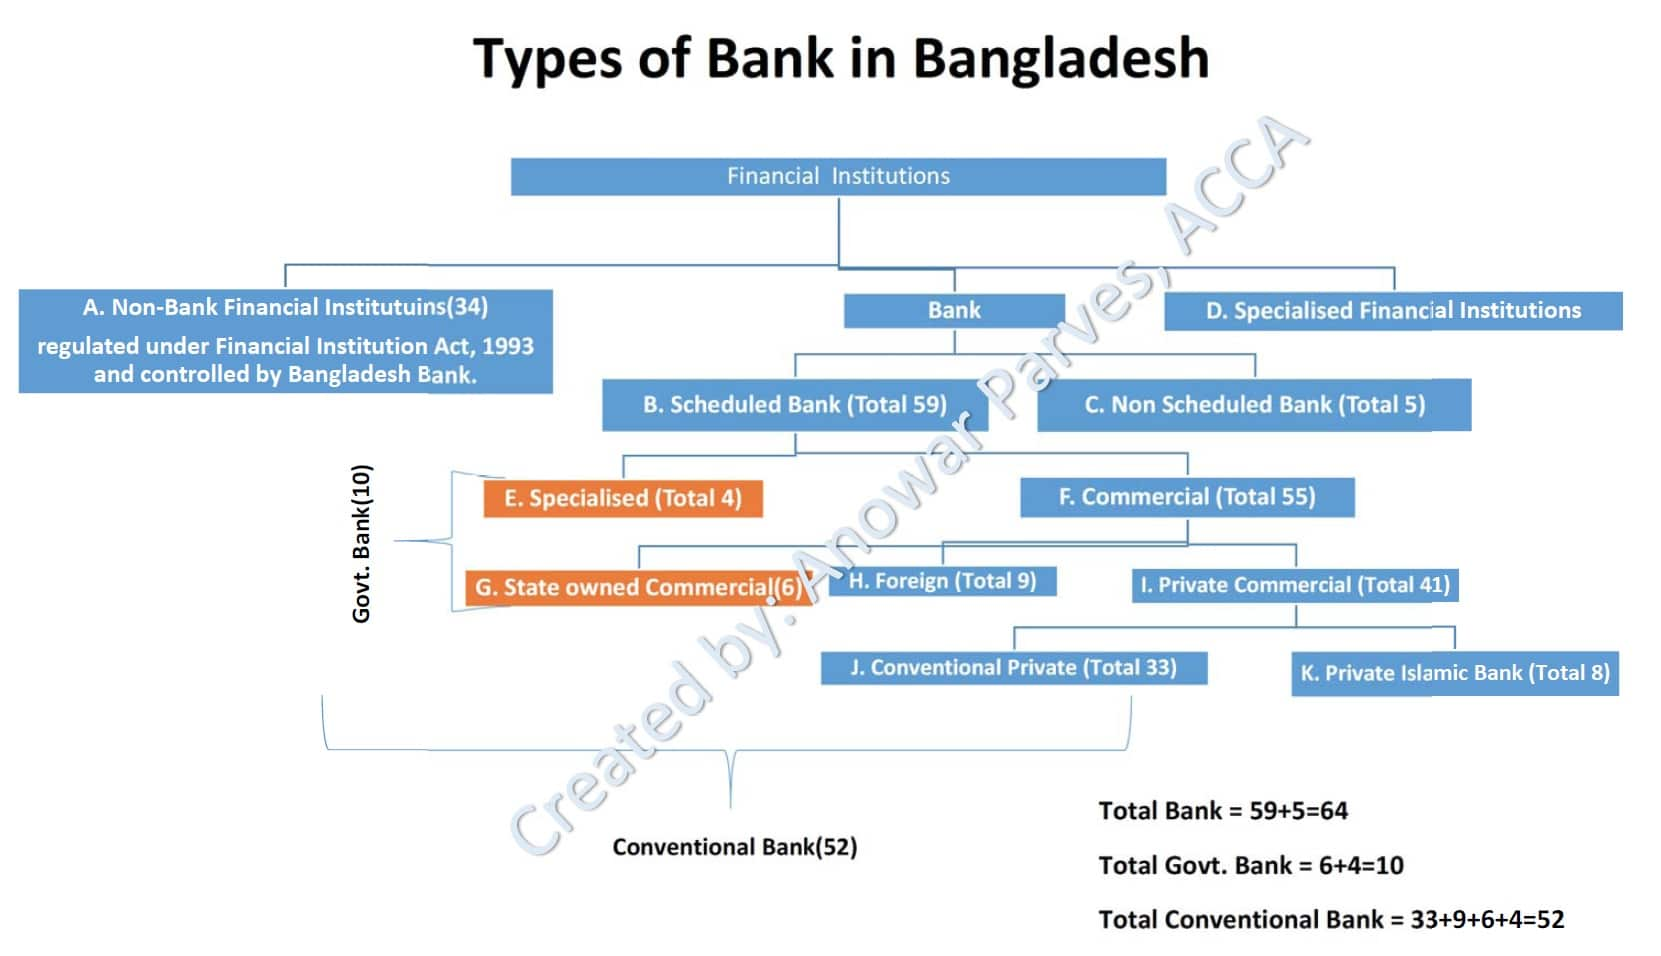 Financial Institution, financial institutions,financial,financial literacy,financial institution,financial institution in india,non-bank financial institution,institutions,loan from financial institutions,chapter -2 financial institutions,examples of financial institutions,non banking financial institutions,chairman of financial institutions,headquarter of financial institutions,indian financial system, banking,banking structure in india,structure of banking,structure of banking in india,banking structure of india,structure of indian banking system,indian banking system,indian banking,banking system in india,banking in india,indian banking structure,tamil indian banking structure,banking structure in india.ibps,banking struture in india,baning structure tree diagram,banking system in india in hindi, banking,fractional reserve banking,usa,retail banking (industry),finance,international banking system,laws relating to banking & insurance,automated banking machine,shadow banking,hrm in banking organizations,central banking,offshore banking,investment banking,effective banking communication,united states,u.s. offshore banking,federal reserve,financial,career in investment banking,career as a investment banking, types of banking,different types of banks in india,types of banking in india,types of banks in india,types of cheques,types of banks and their functions,bank,types of bank,types of banks,types of cheques in hindi,list of banks in india,different types of cheques,types of bank loans in india,different types of banks